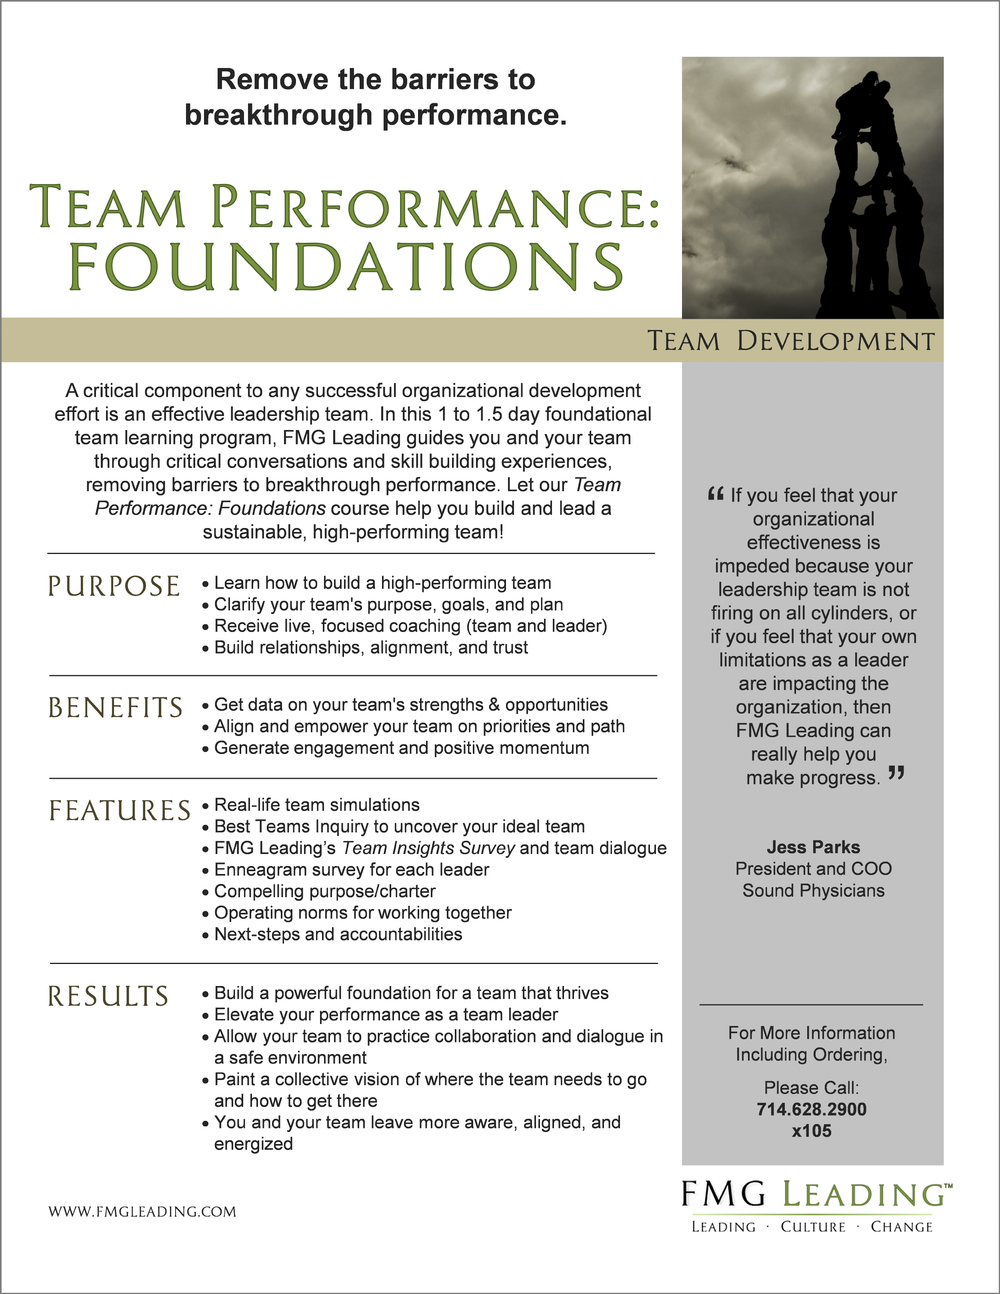 team development fmg leading leading · culture · change click image to more